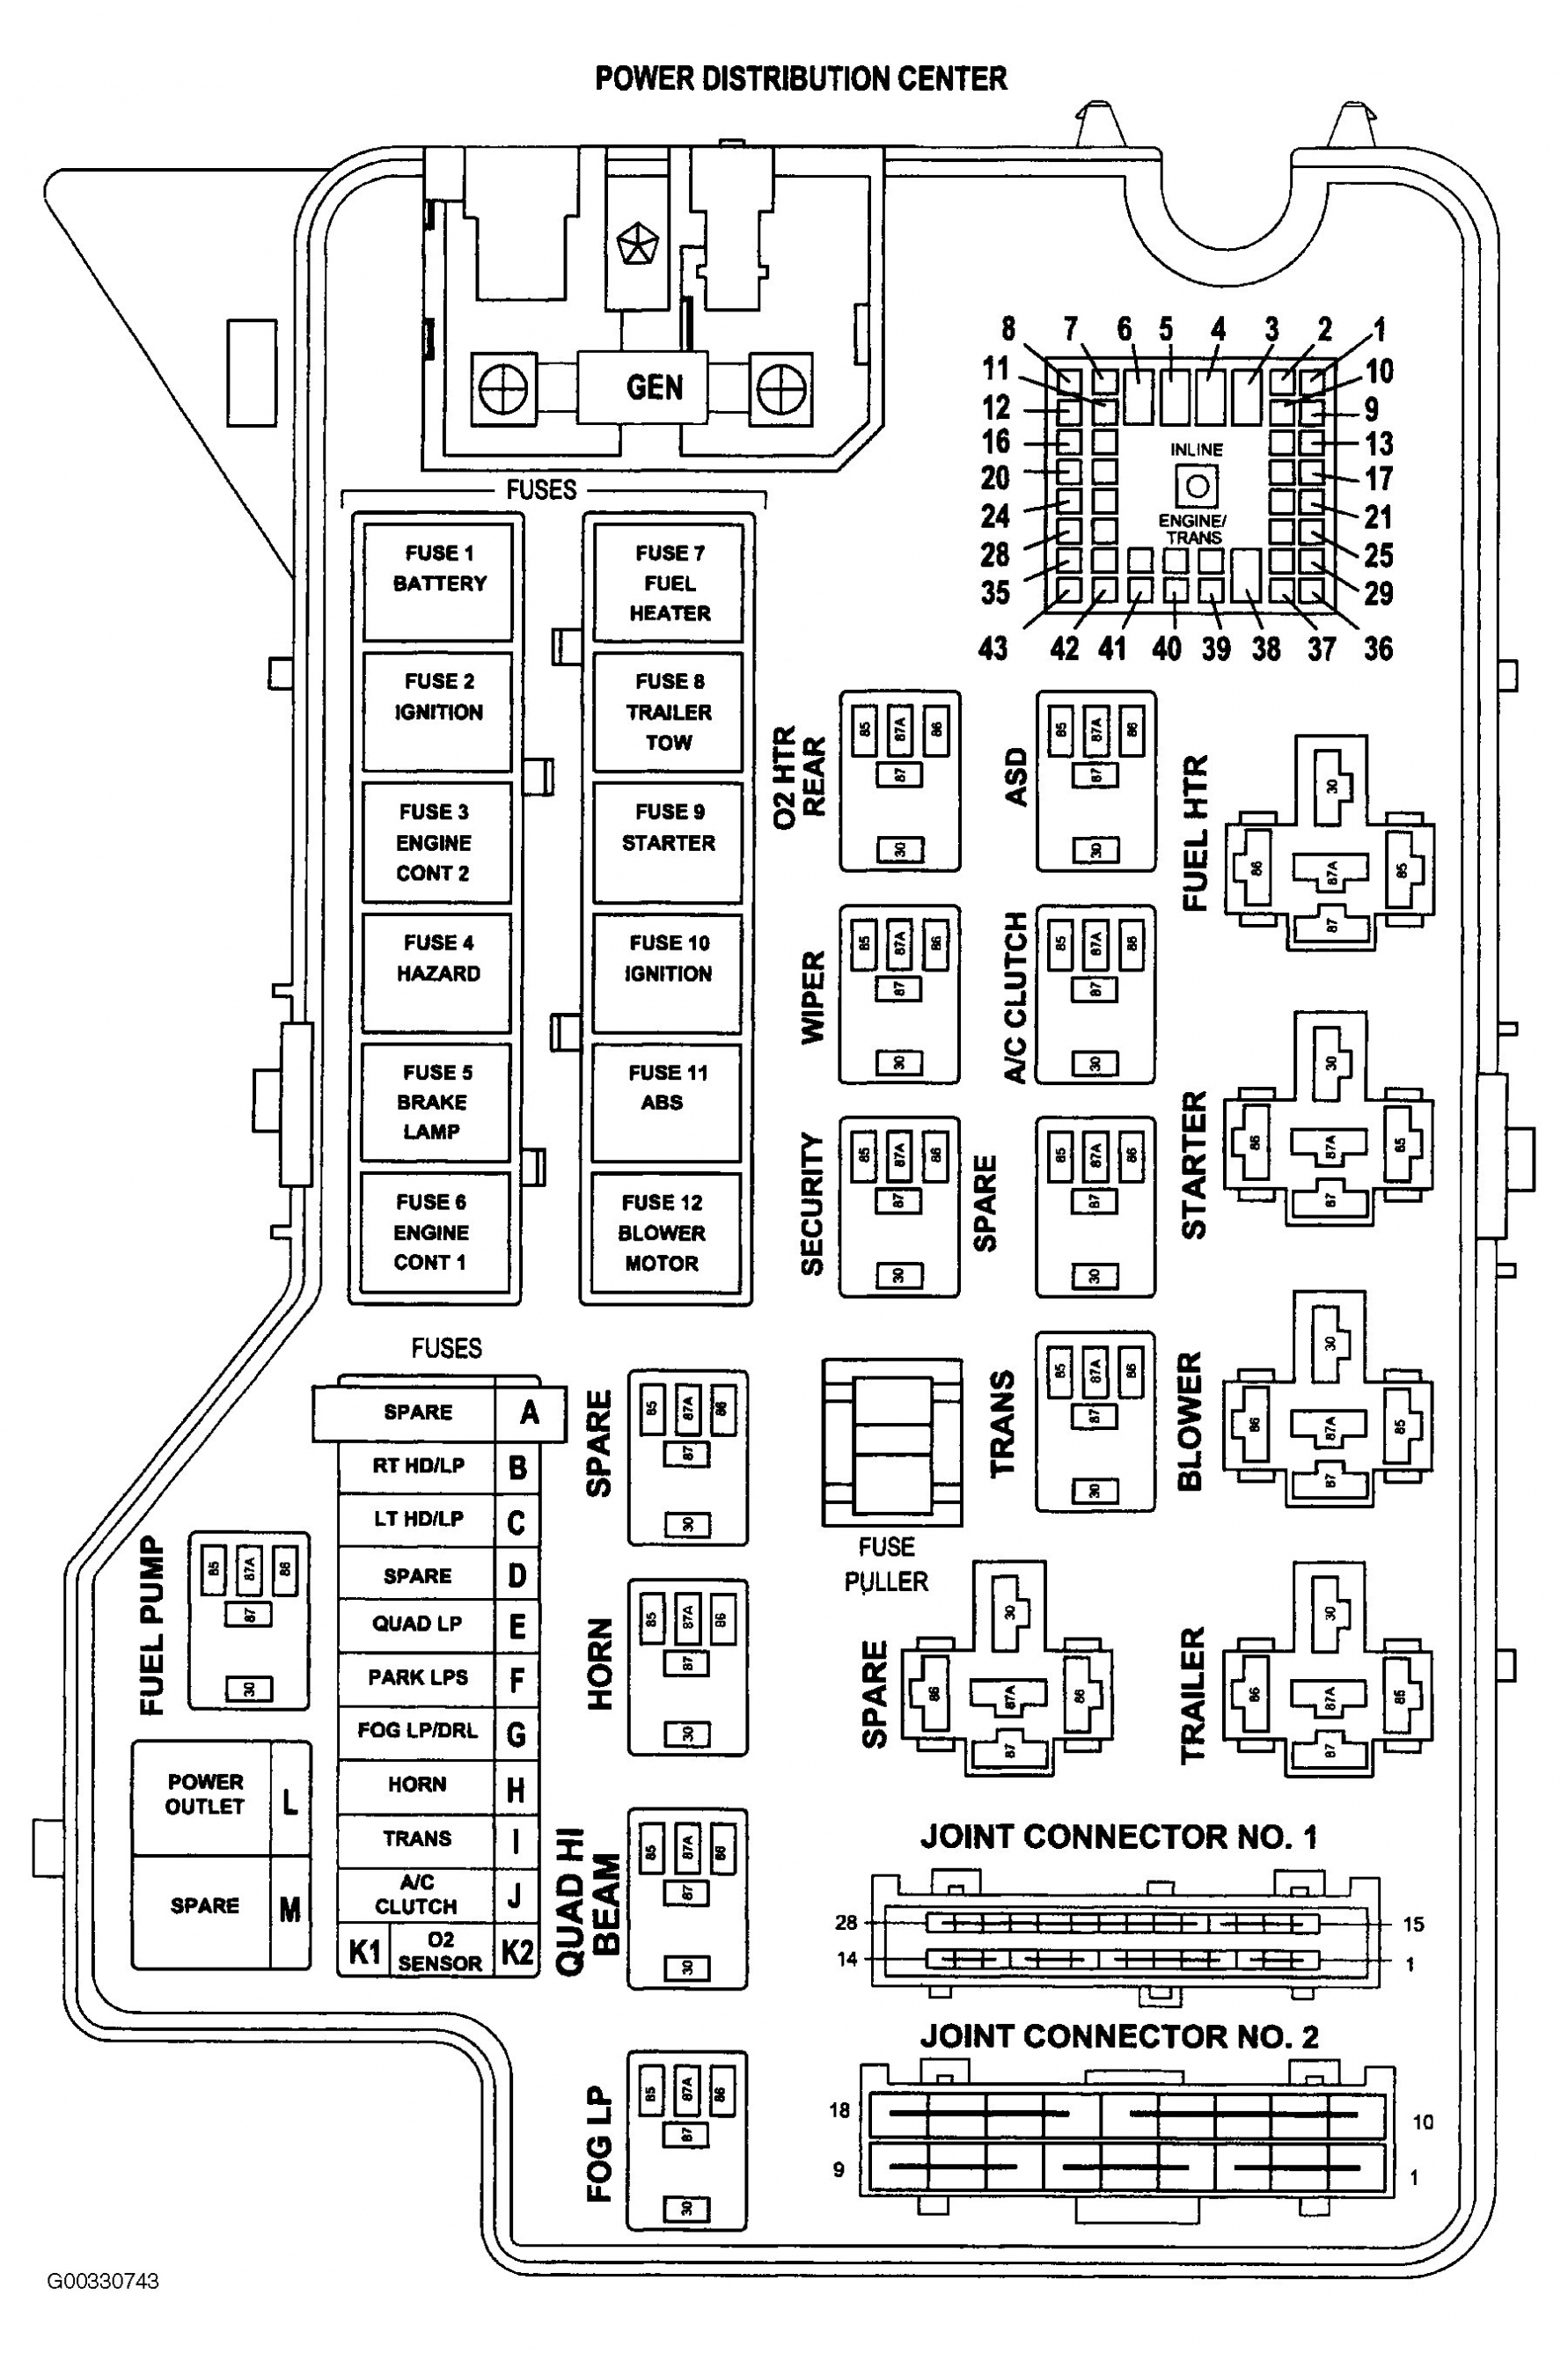 Dodge Durango Interior Fuse Box Diagram